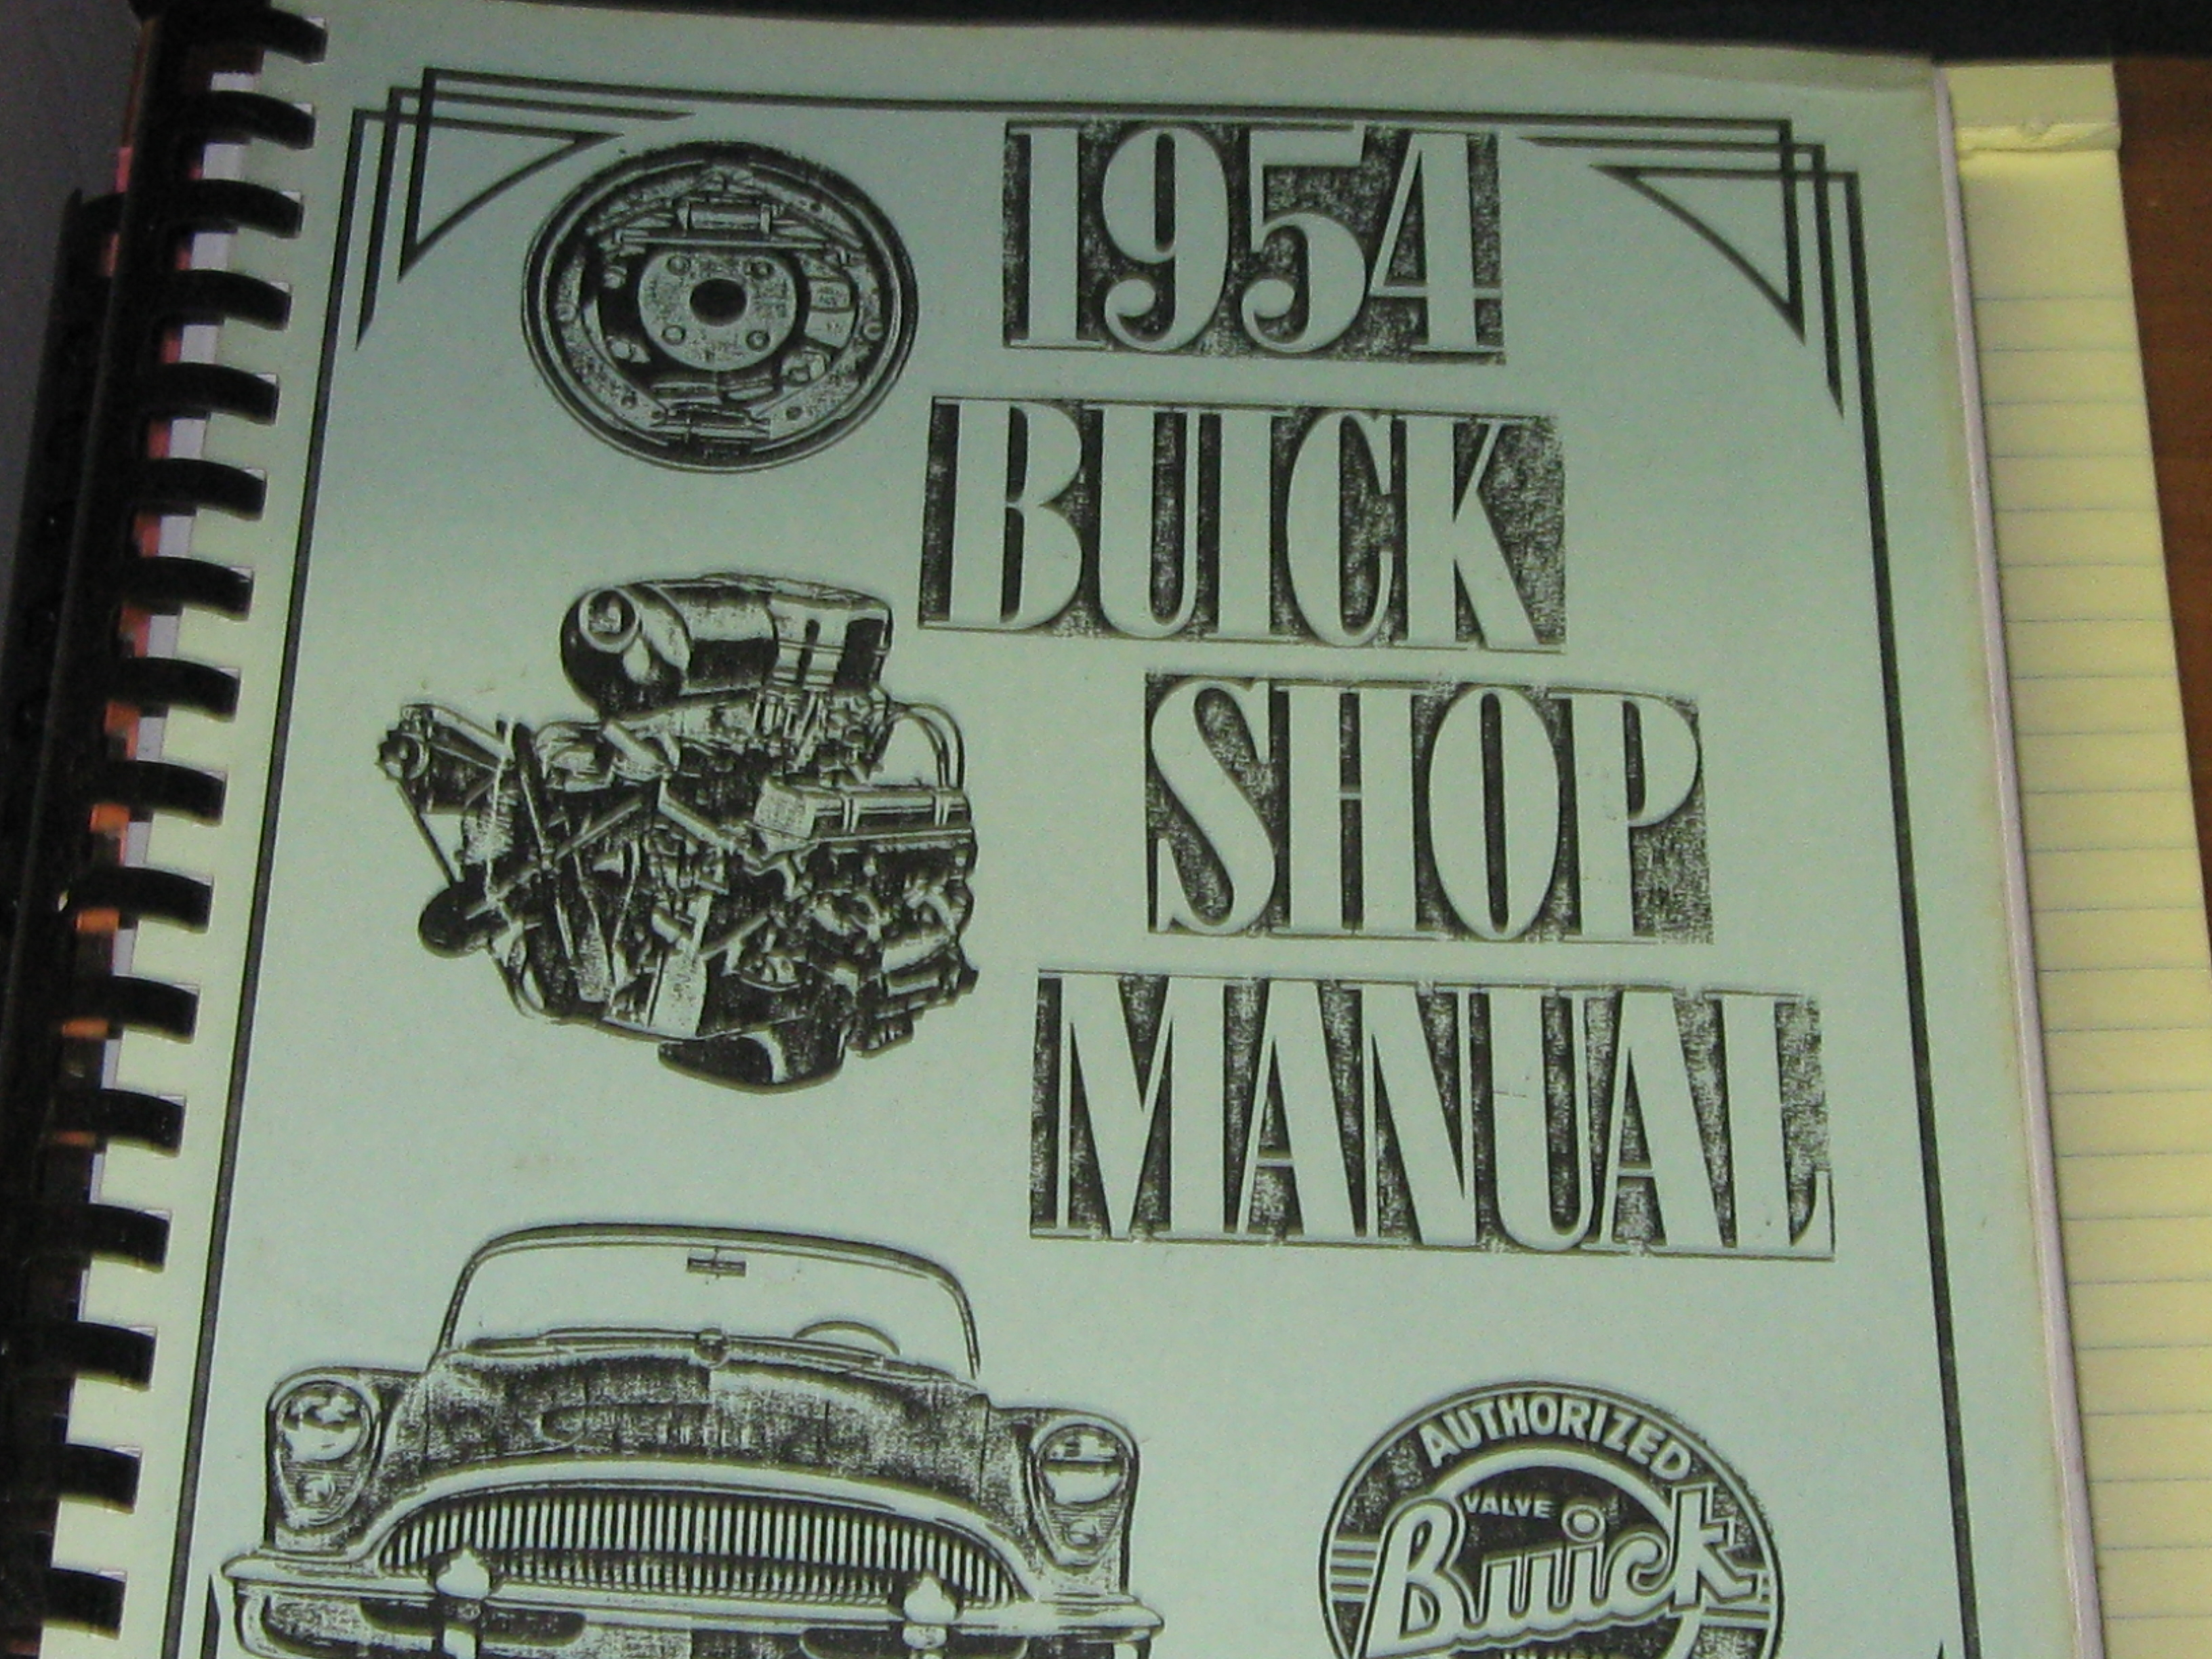 then and now automotive 1954 buick shop manual then and now automotive rh then now auto com 1941 buick shop manual 1955 buick shop manual